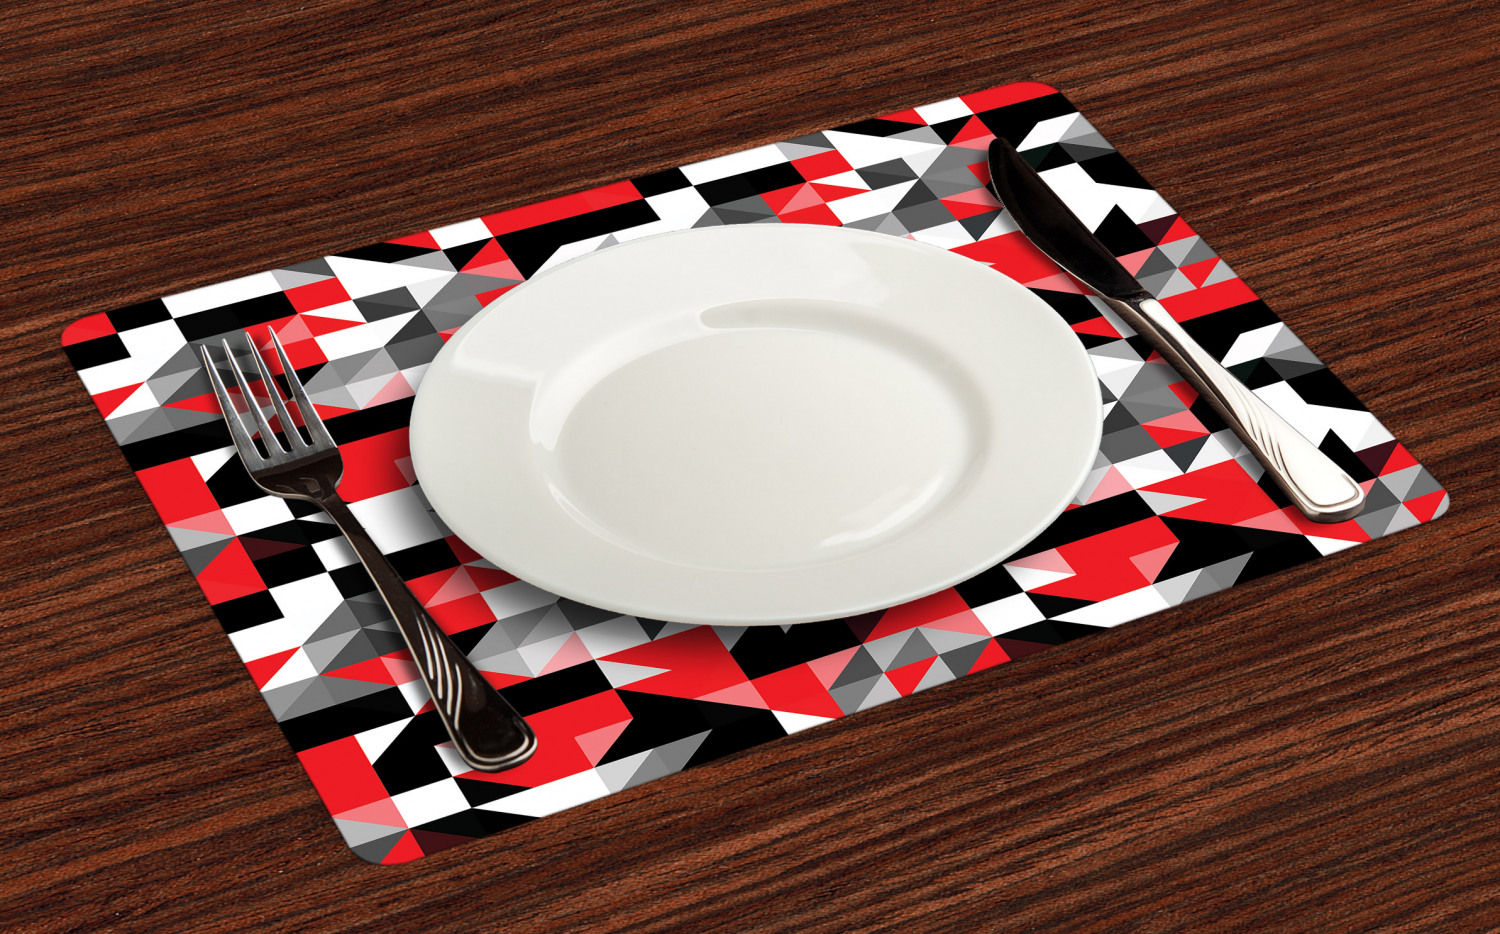 Red-Black-Placemats-Set-of-4-Half-Triangles-Square-Print-Fabric-Table-Mats thumbnail 2